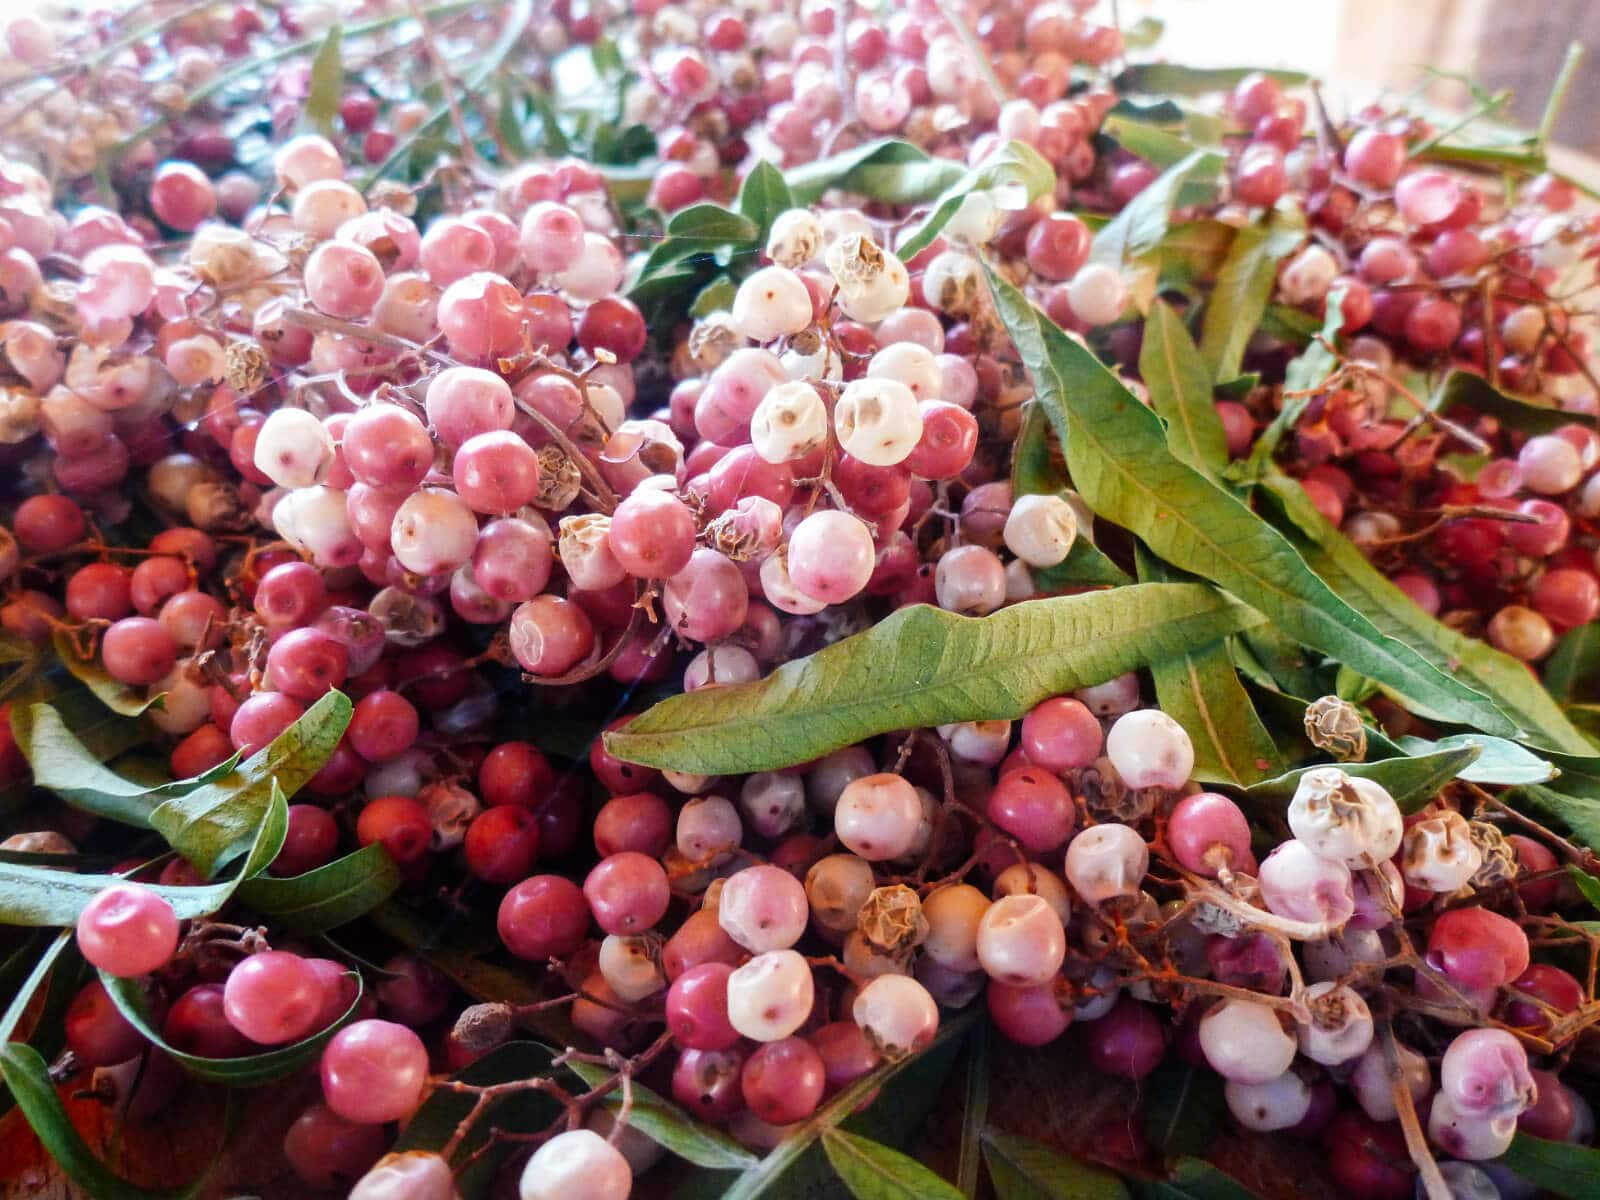 Pink peppercorn berries foraged from a Peruvian pepper tree